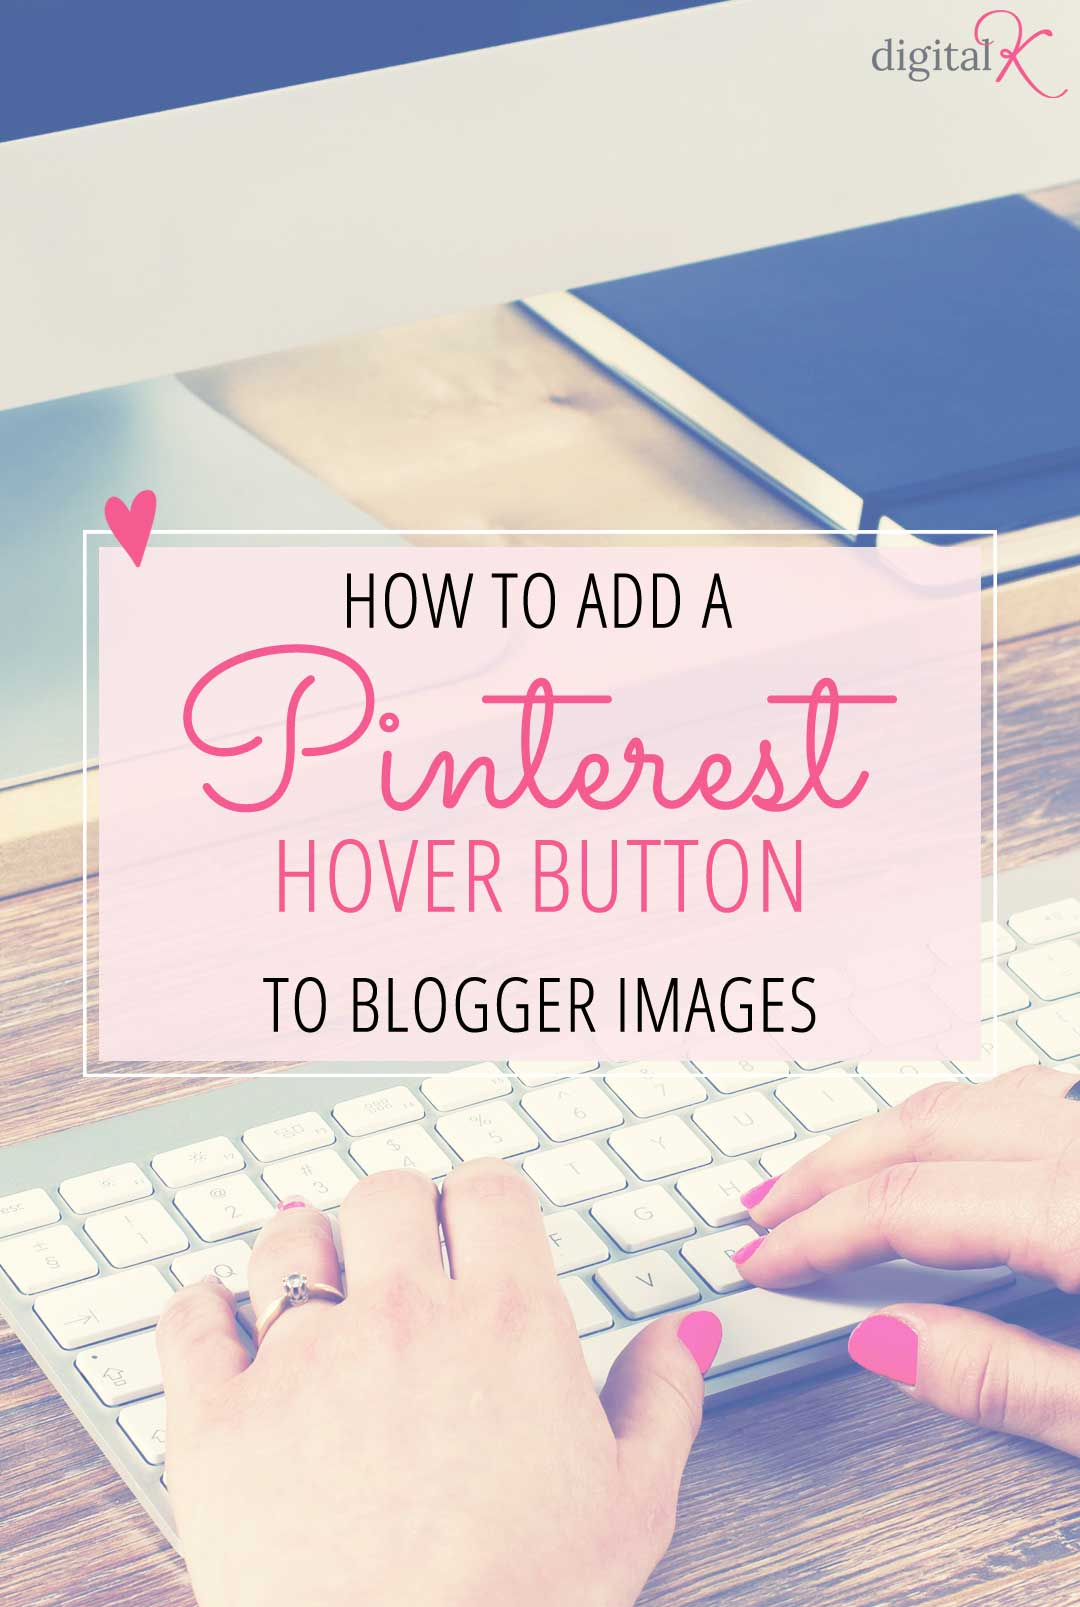 How to Add a Pinterest Hover Button to Blogger Images